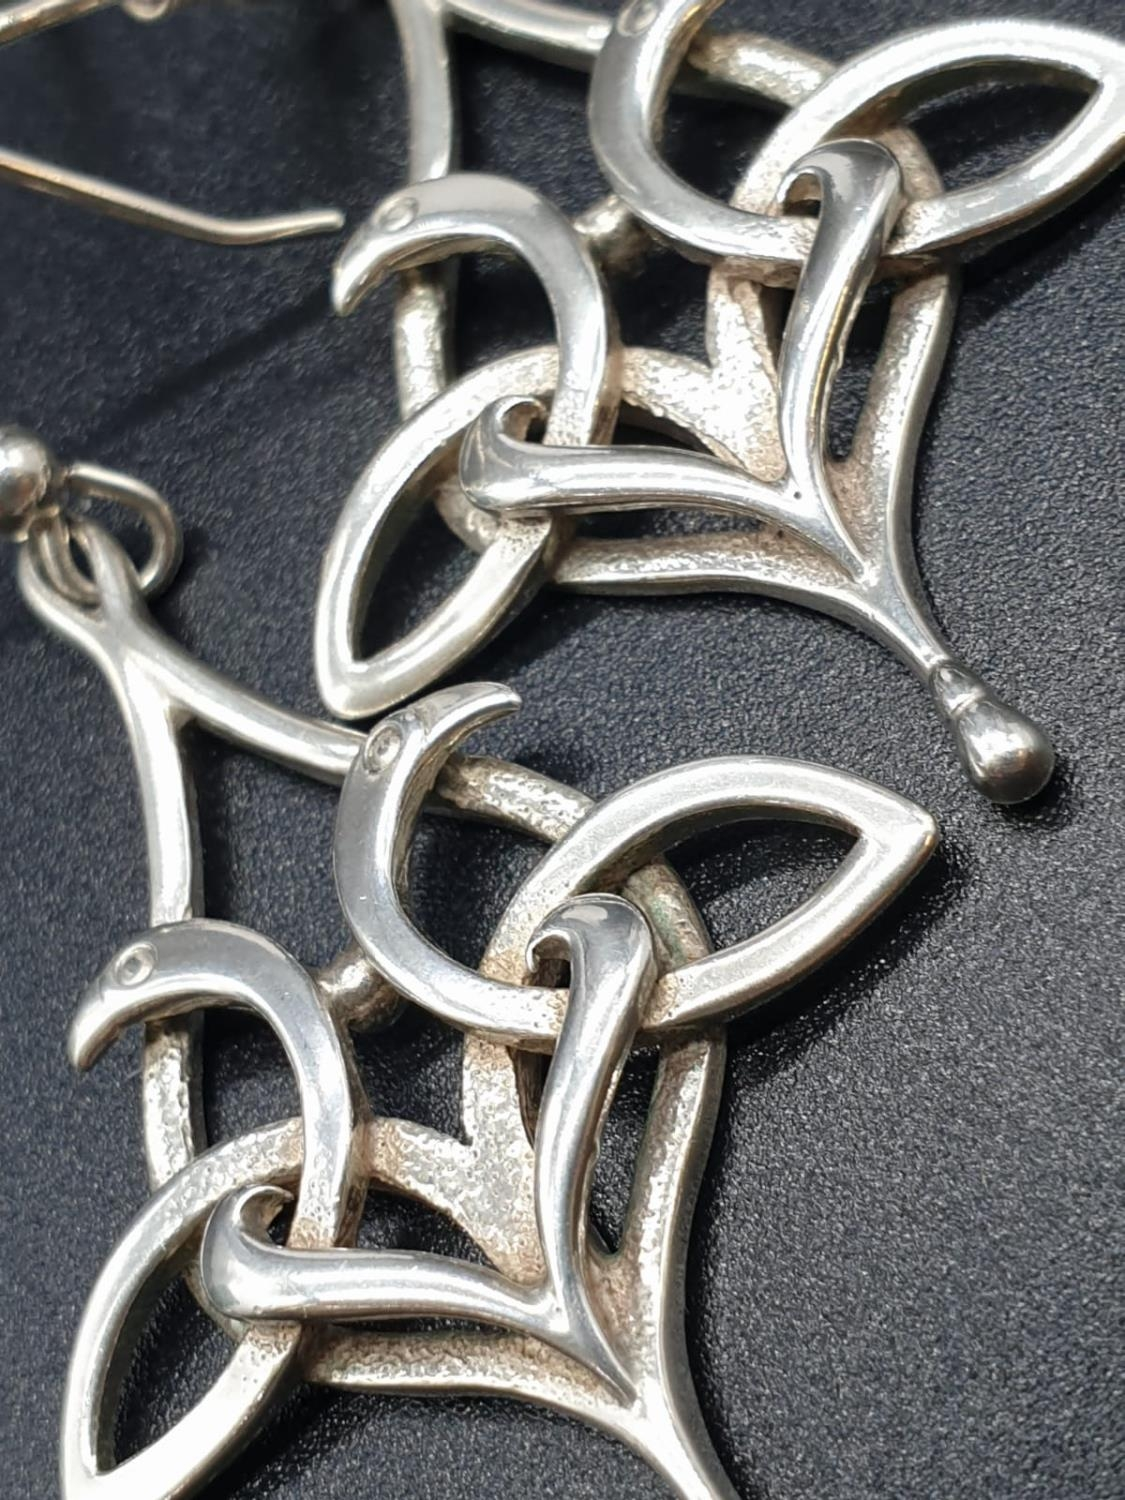 A Pair of Silver Drop Earrings 6.6g 5cm - Image 2 of 3